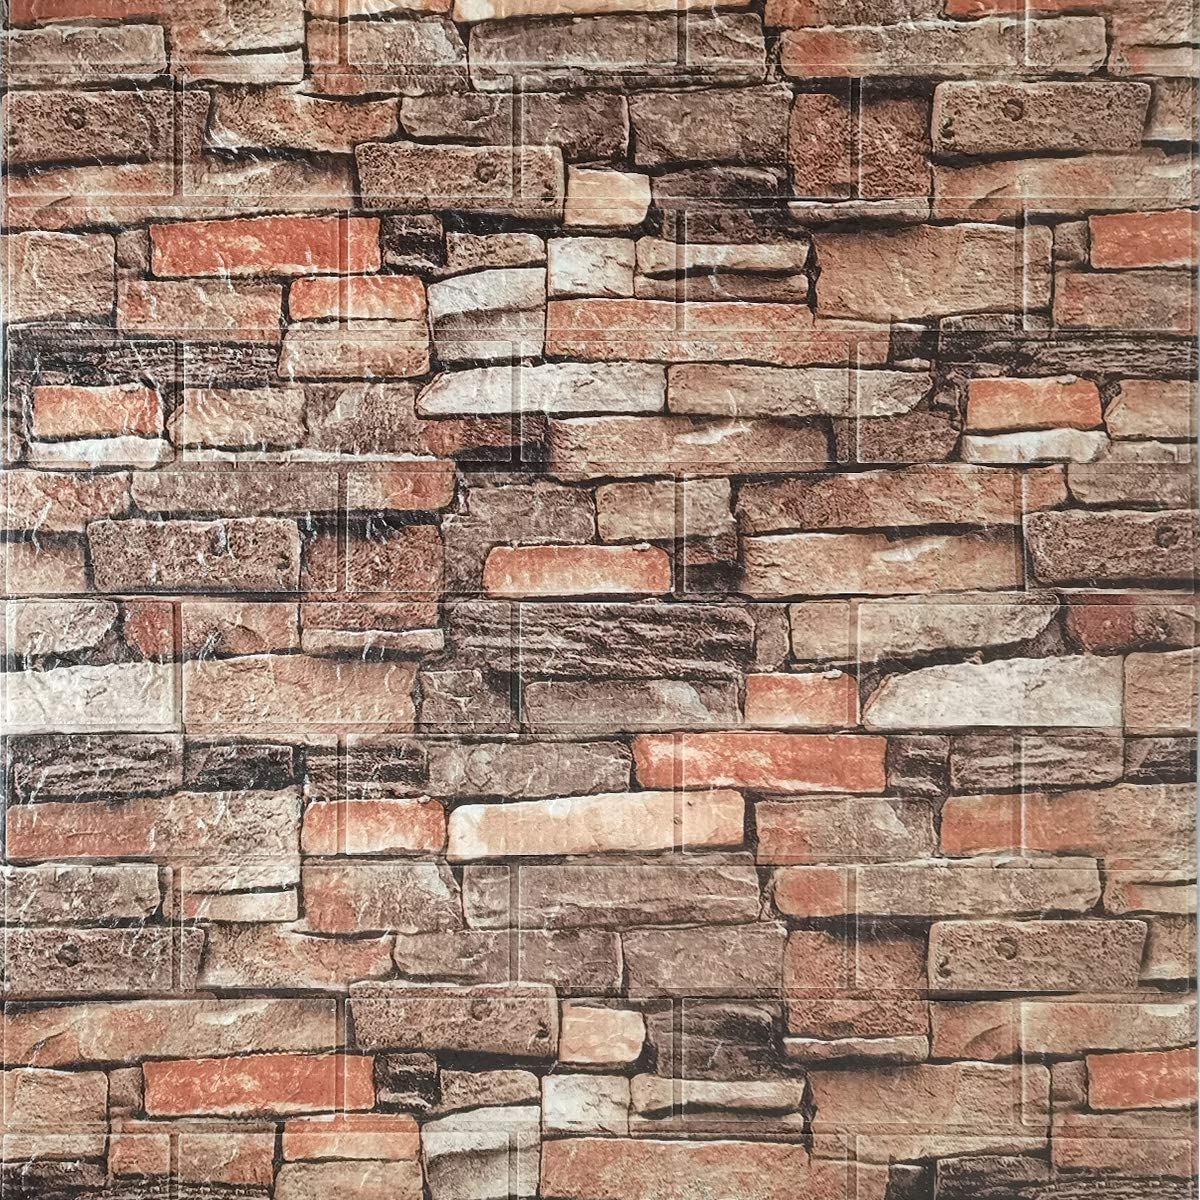 Cozylkx 3D Self Adhesive Foam NEW before selling ☆ Wall sq 10 Tiles 57 Cover mart Panels